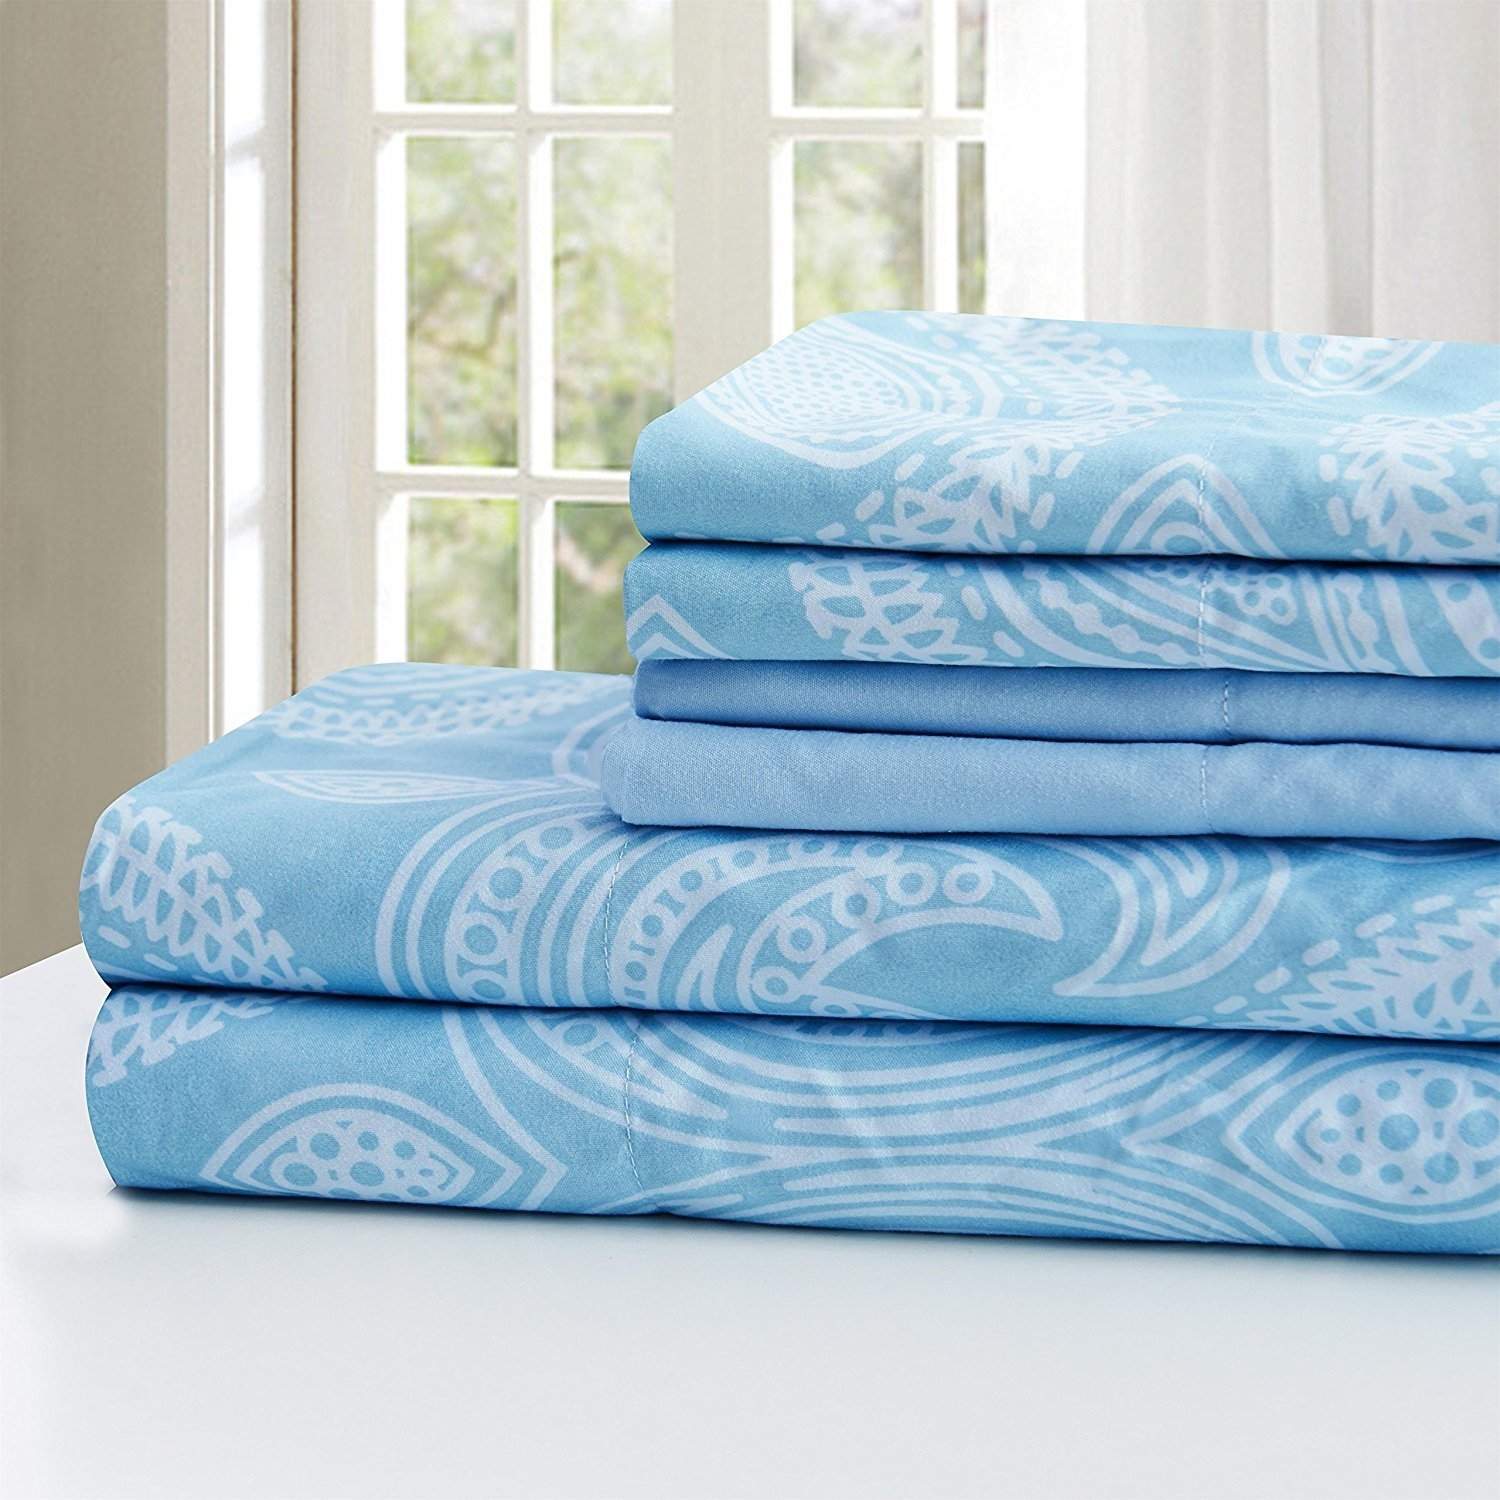 Ultra Soft Paisley Printed 6 Piece Bed Sheet set - Blue, Twin